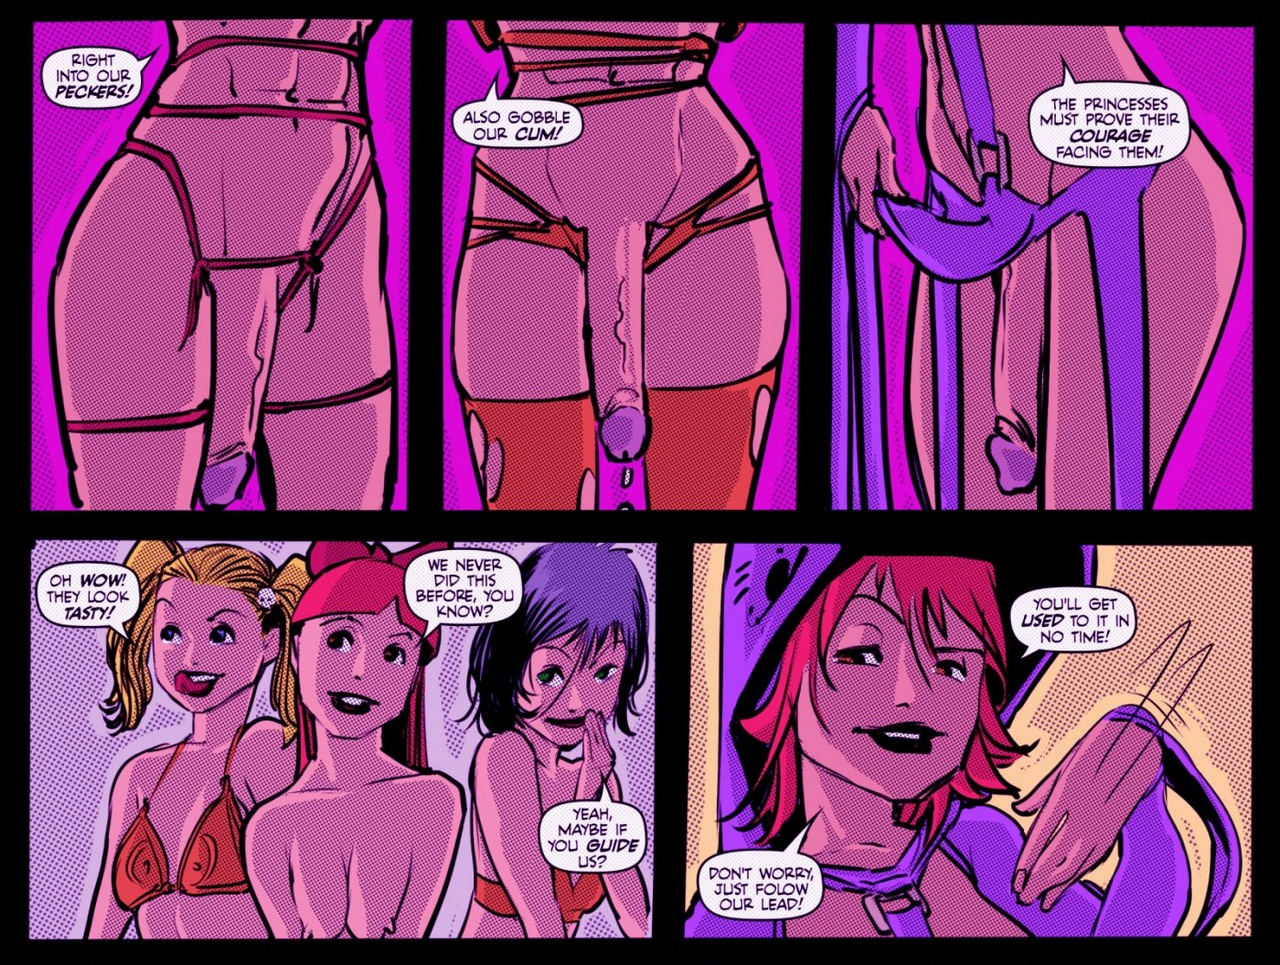 Dick-Or-Treat 15 free sex comic